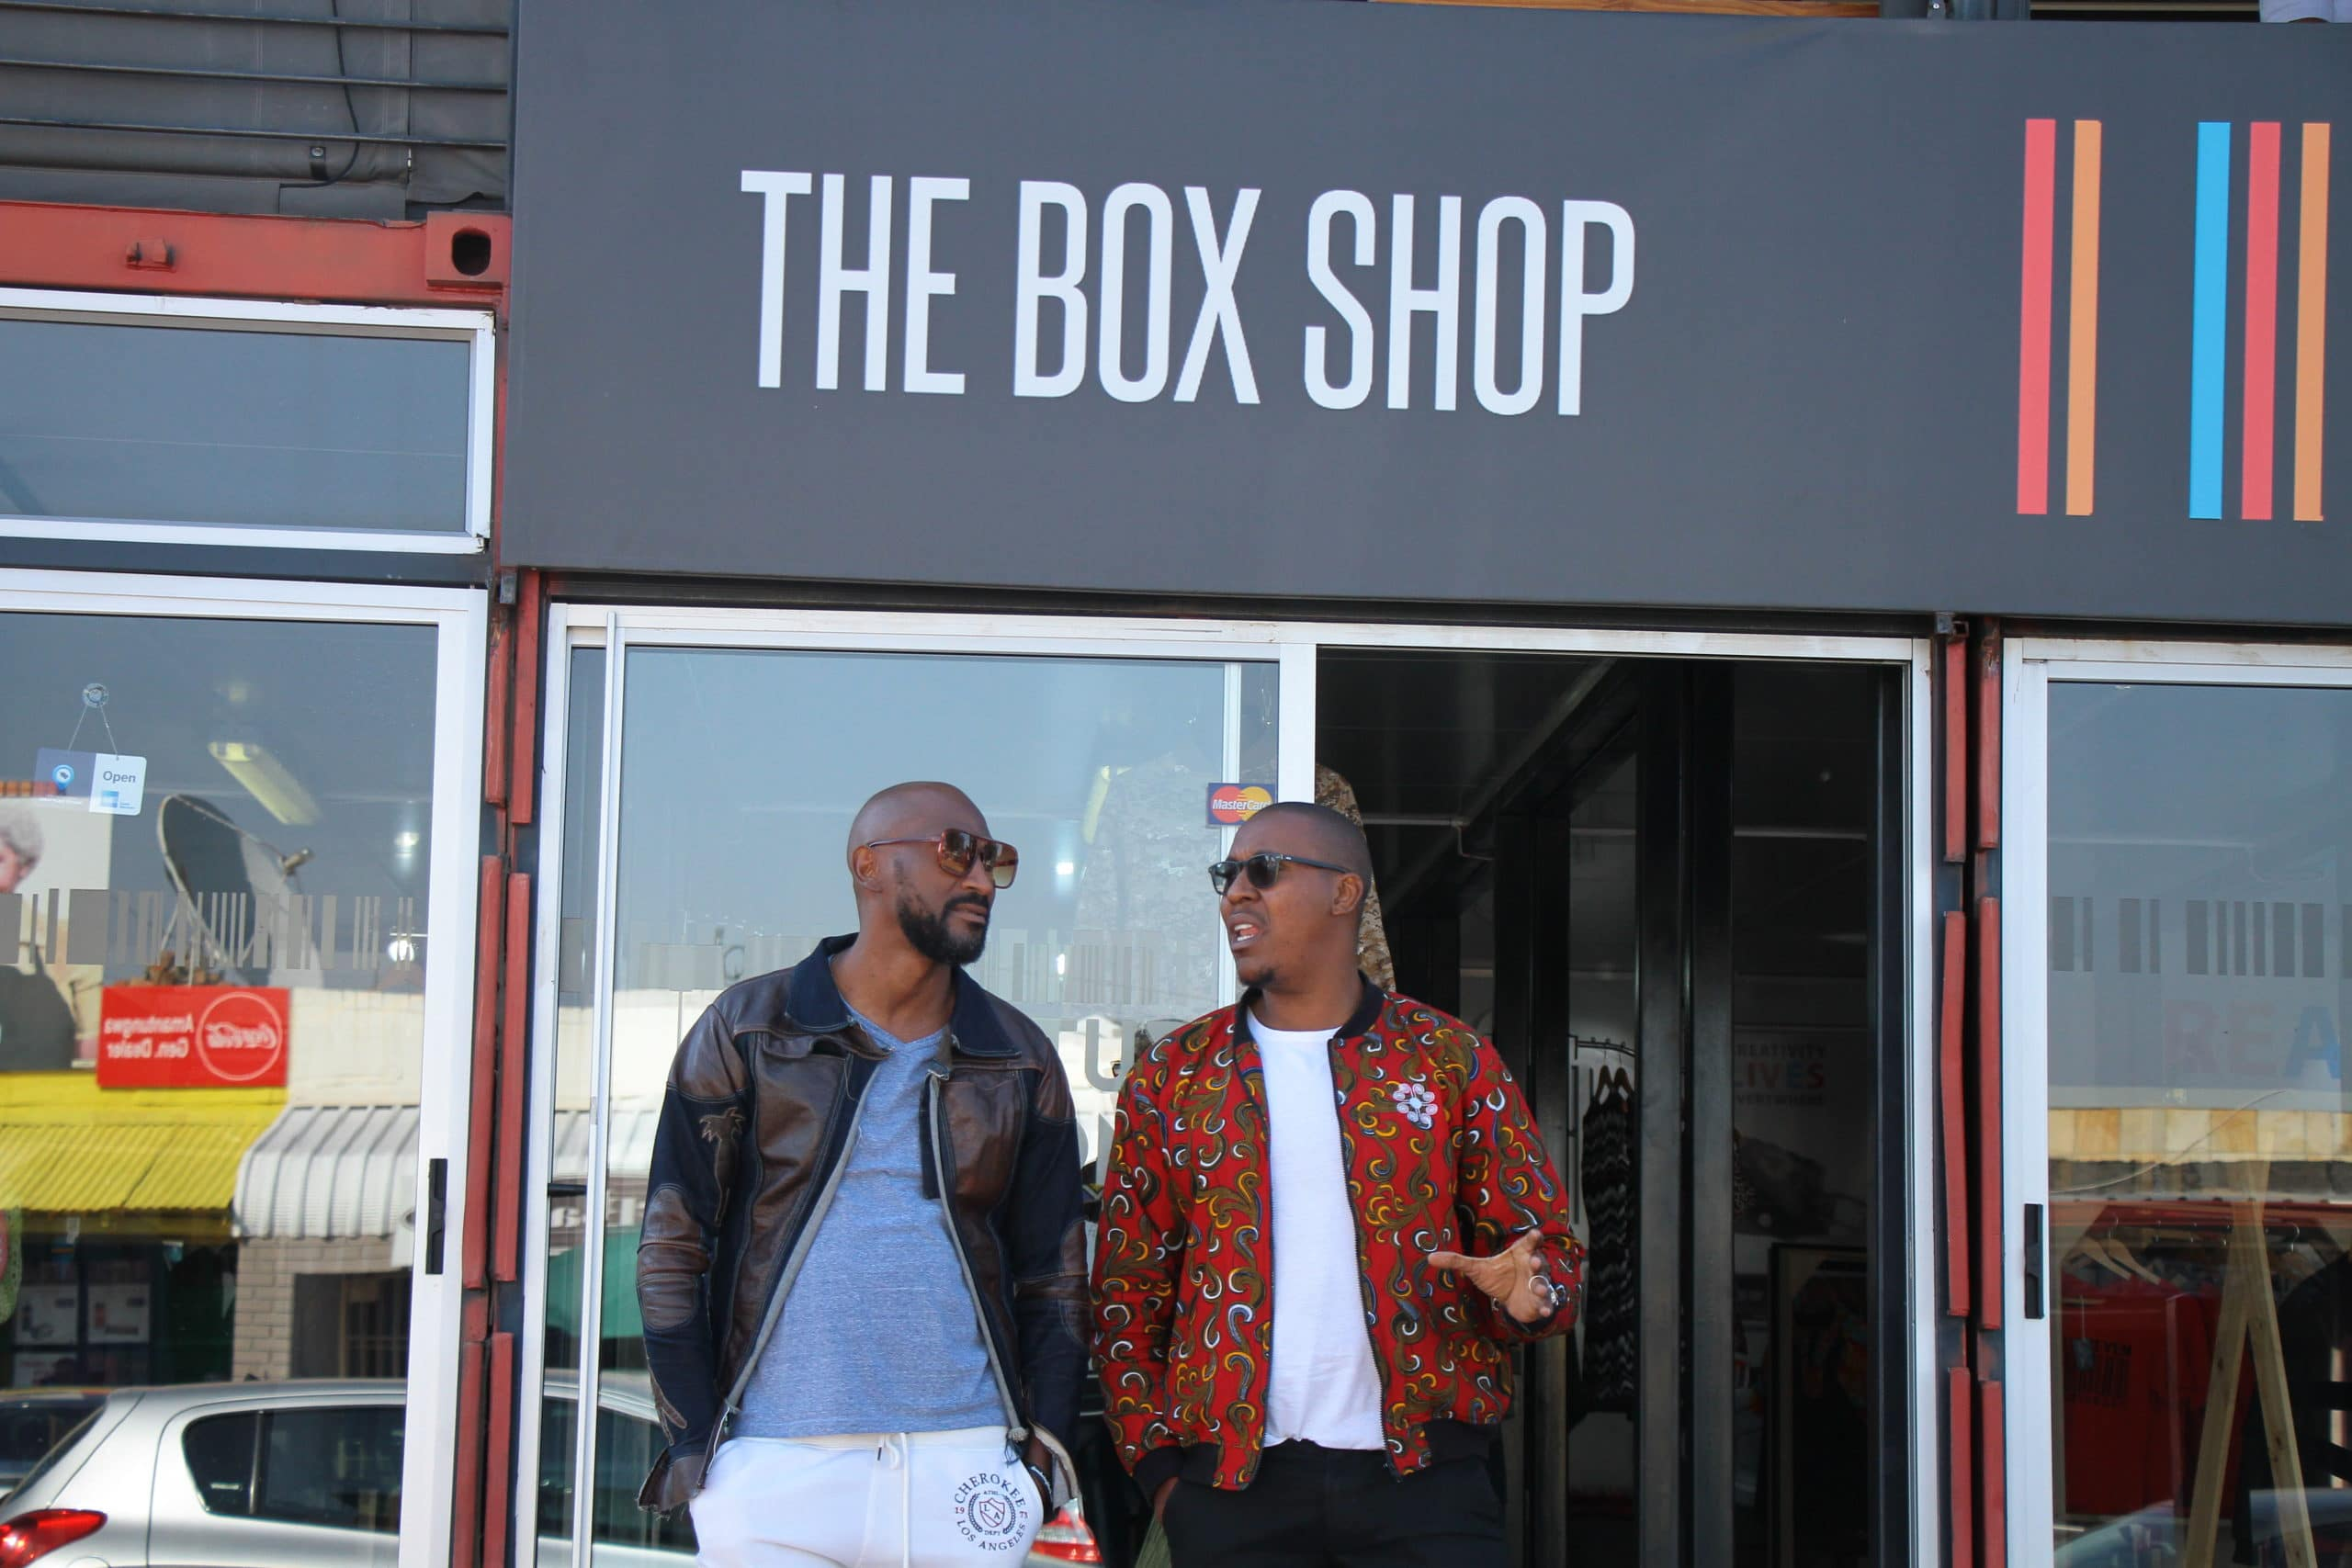 Founders of The Box Shop Bernard Msimango and Sifiso Moyo; pic supplied